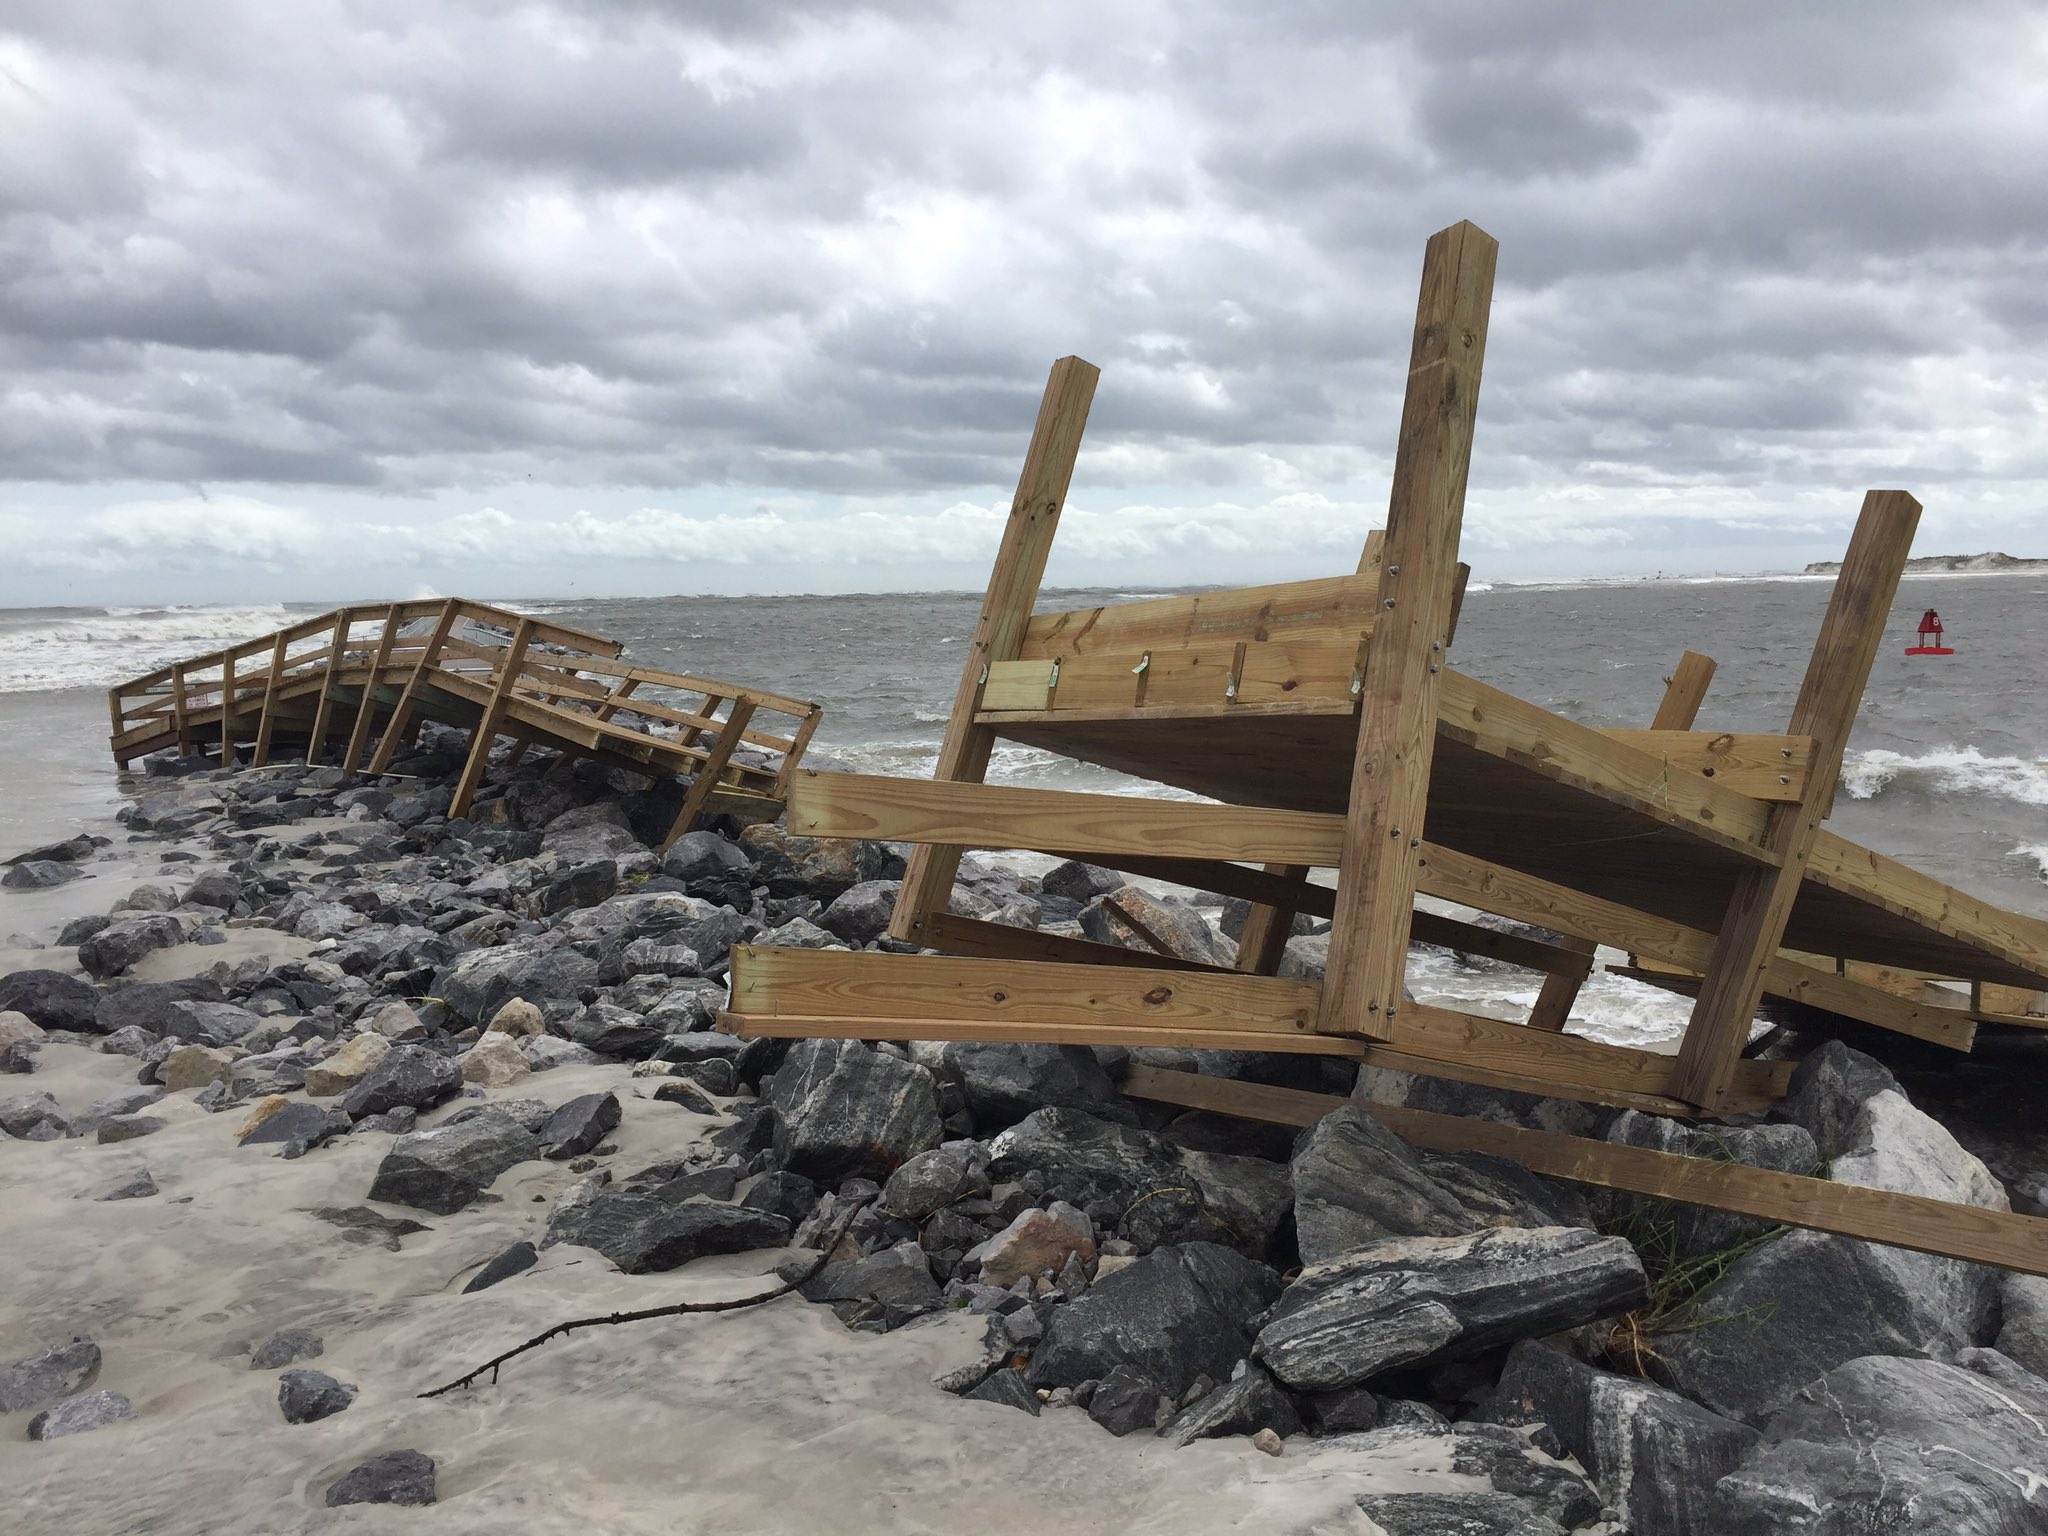 "<div class=""meta image-caption""><div class=""origin-logo origin-image none""><span>none</span></div><span class=""caption-text"">Ponce Inlet boardwalk near Daytona Beach was destroyed by the storm. (Mike Springer/WFTV)</span></div>"